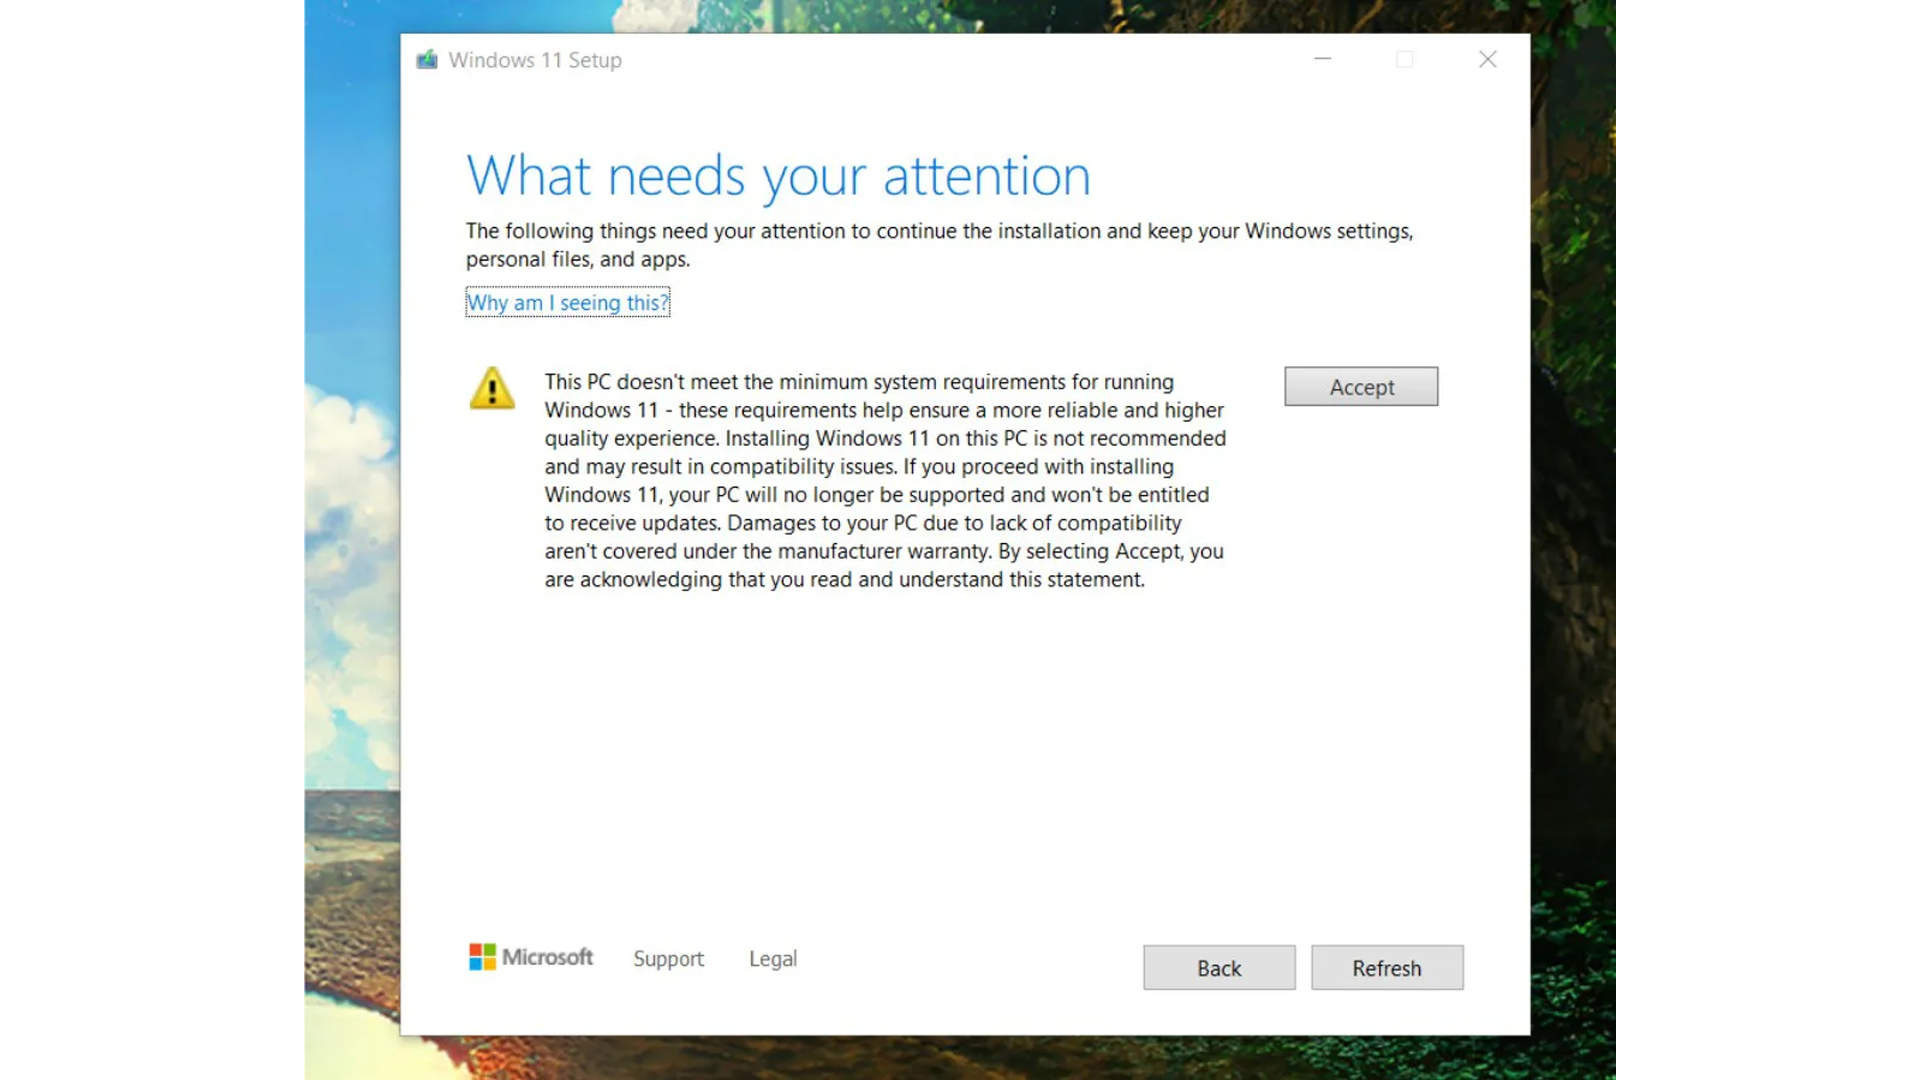 """The waiver reads: """"This PC doesn't meet the minimum system requirements for running Windows 11 - these requirements help ensure a more reliable and higher quality experience. Installing Windows 11 on this PC is not recommended and may result in compatibility issues. If you proceed with installing Windows 11, your PC will no longer be supported and won't be entitled to recieve updates. Damages to your PC due to a lack of compatibility aren't covered under the manufacturer warranty."""""""